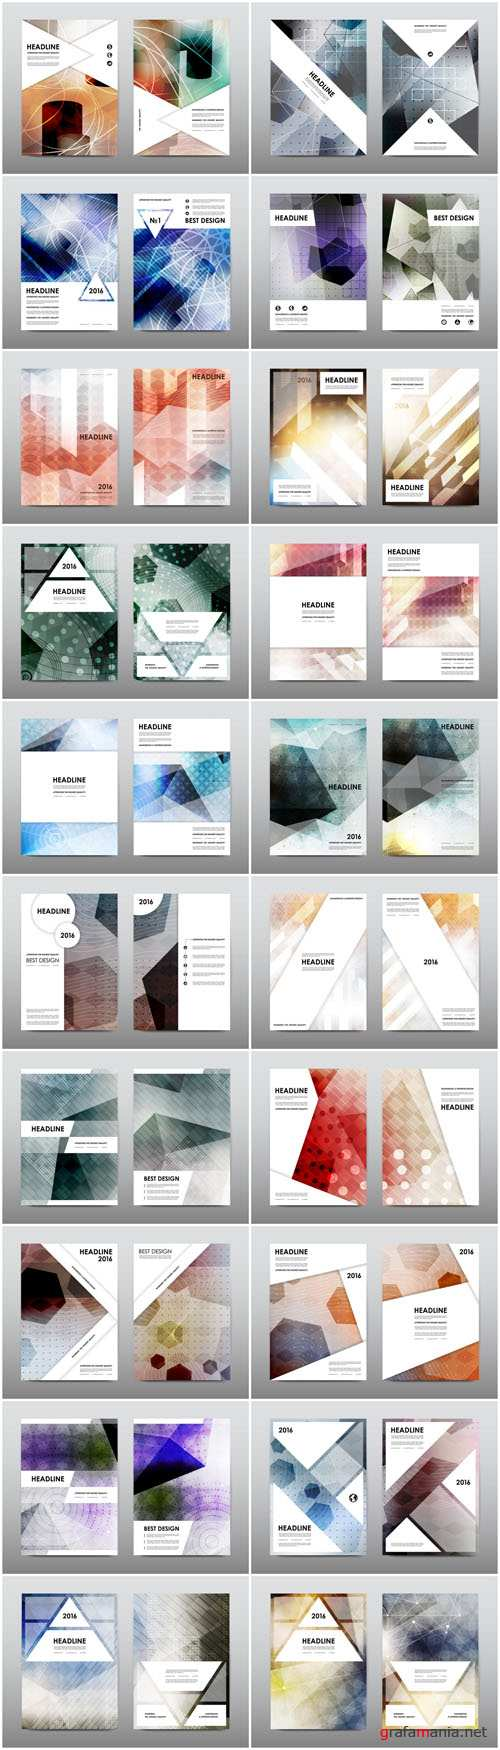 Magazine booklet cover, brochure layout template & abstract flyer design 5 - 20xEPS Vector Stock